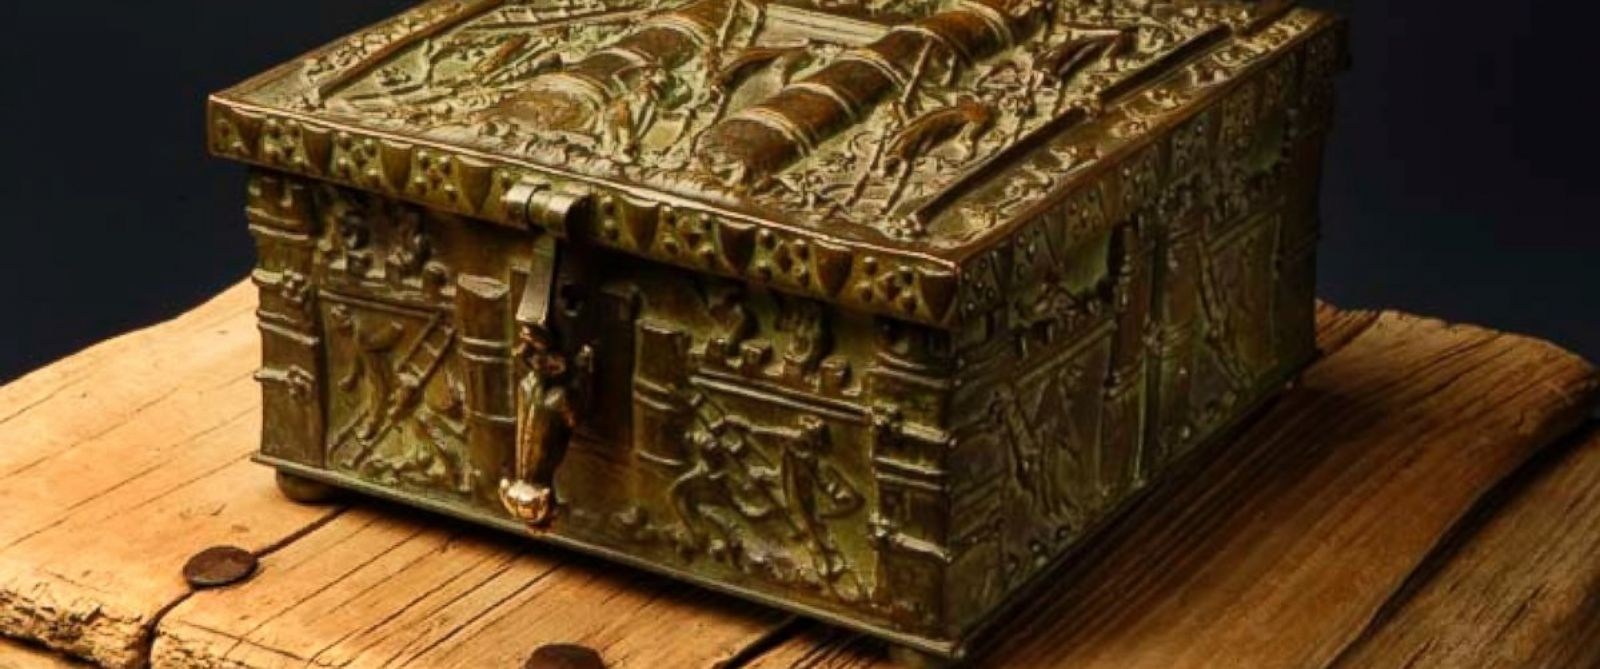 New Mexico Millionaire Lures Treasure Hunters With Hidden Chest - ABC ...